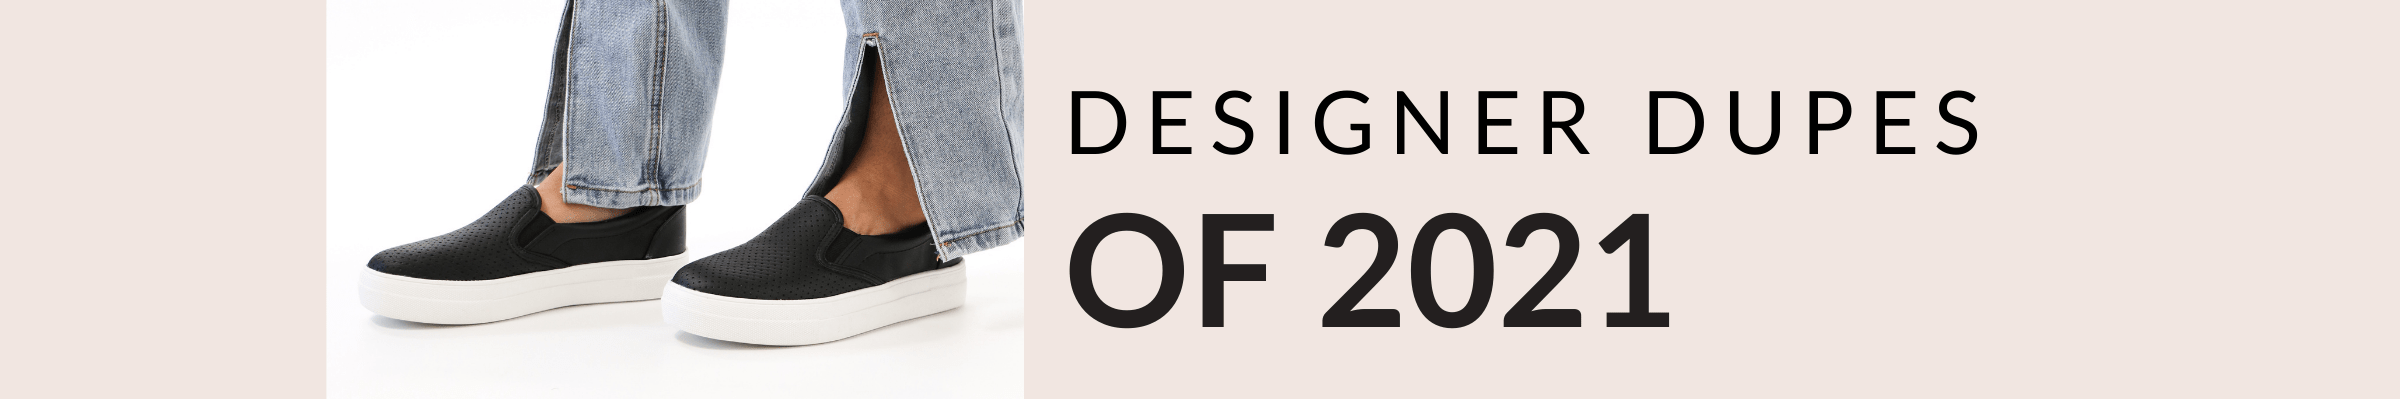 designer dupes of 2021 graphic